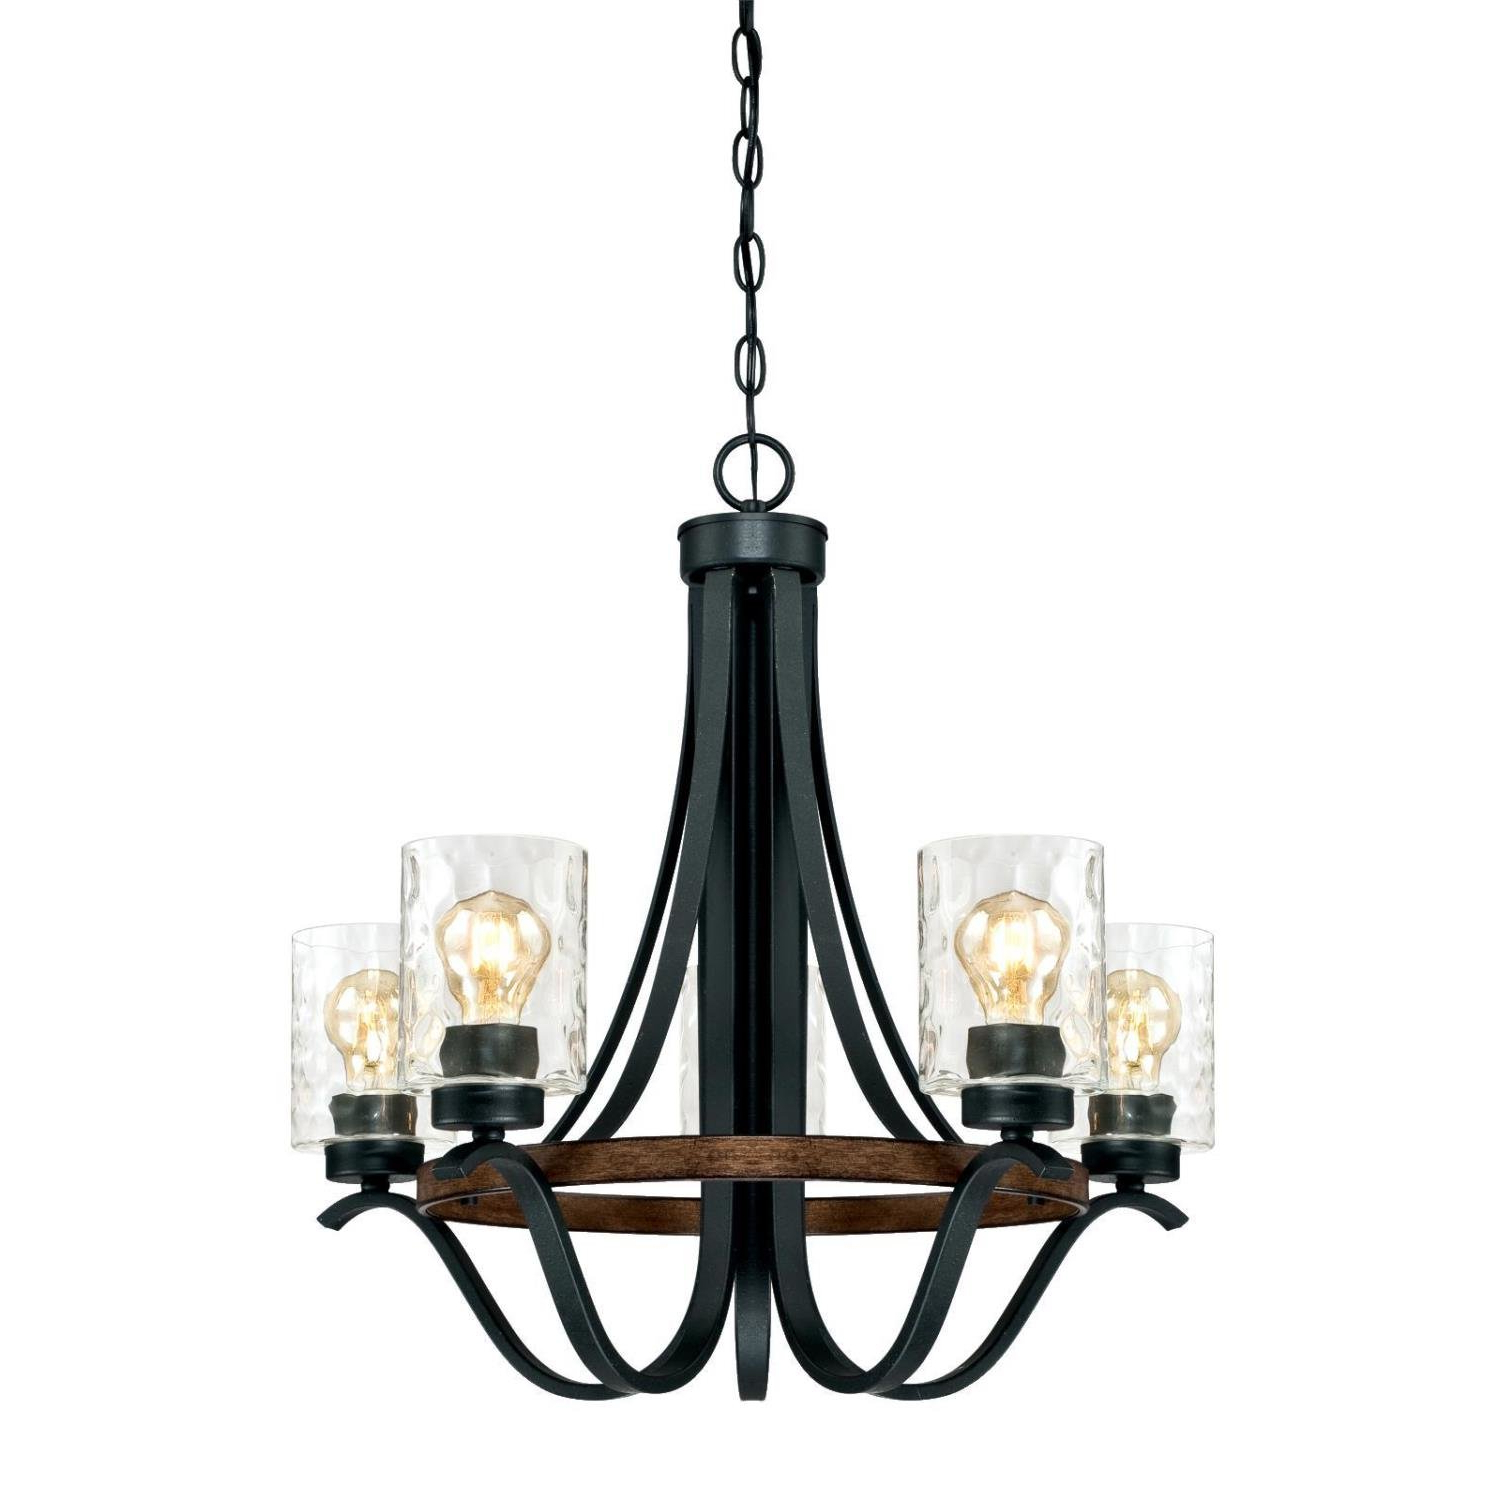 Sabo Indoor 5 Light Shaded Chandelier Intended For Well Known Crofoot 5 Light Shaded Chandeliers (View 22 of 25)